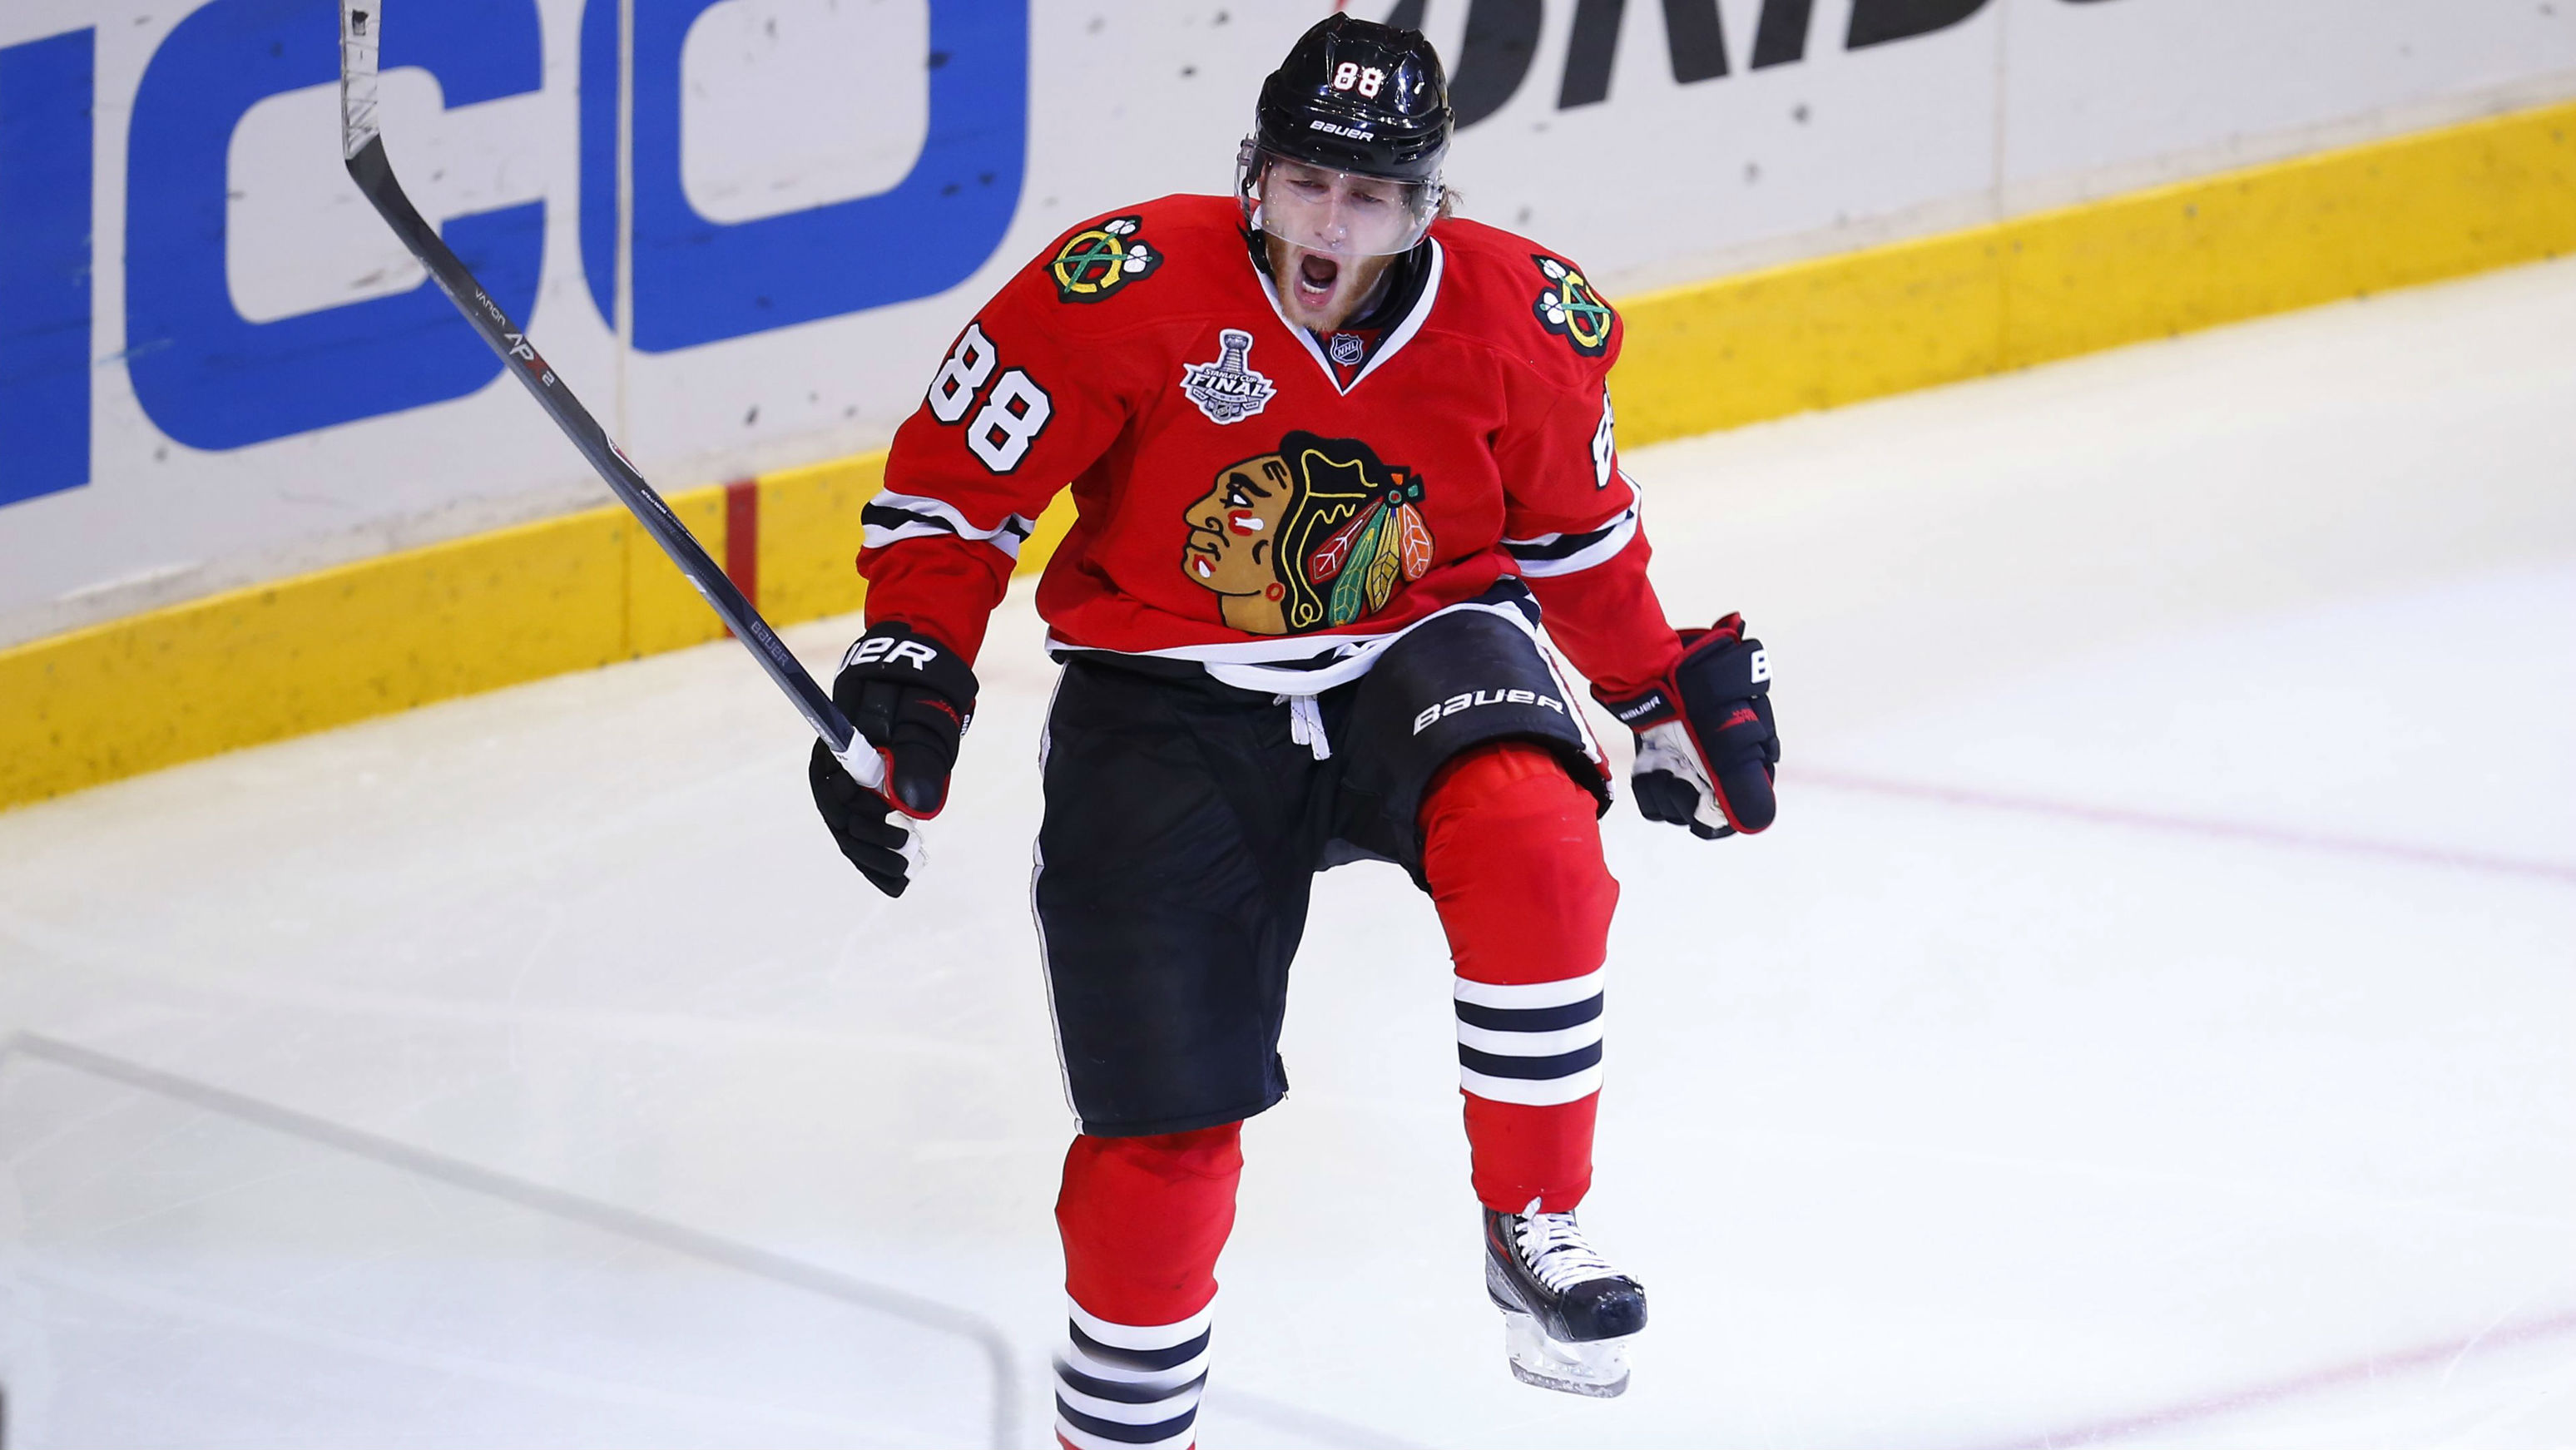 Hope In Minnesota >> Patrick Kane Celly   www.pixshark.com - Images Galleries With A Bite!